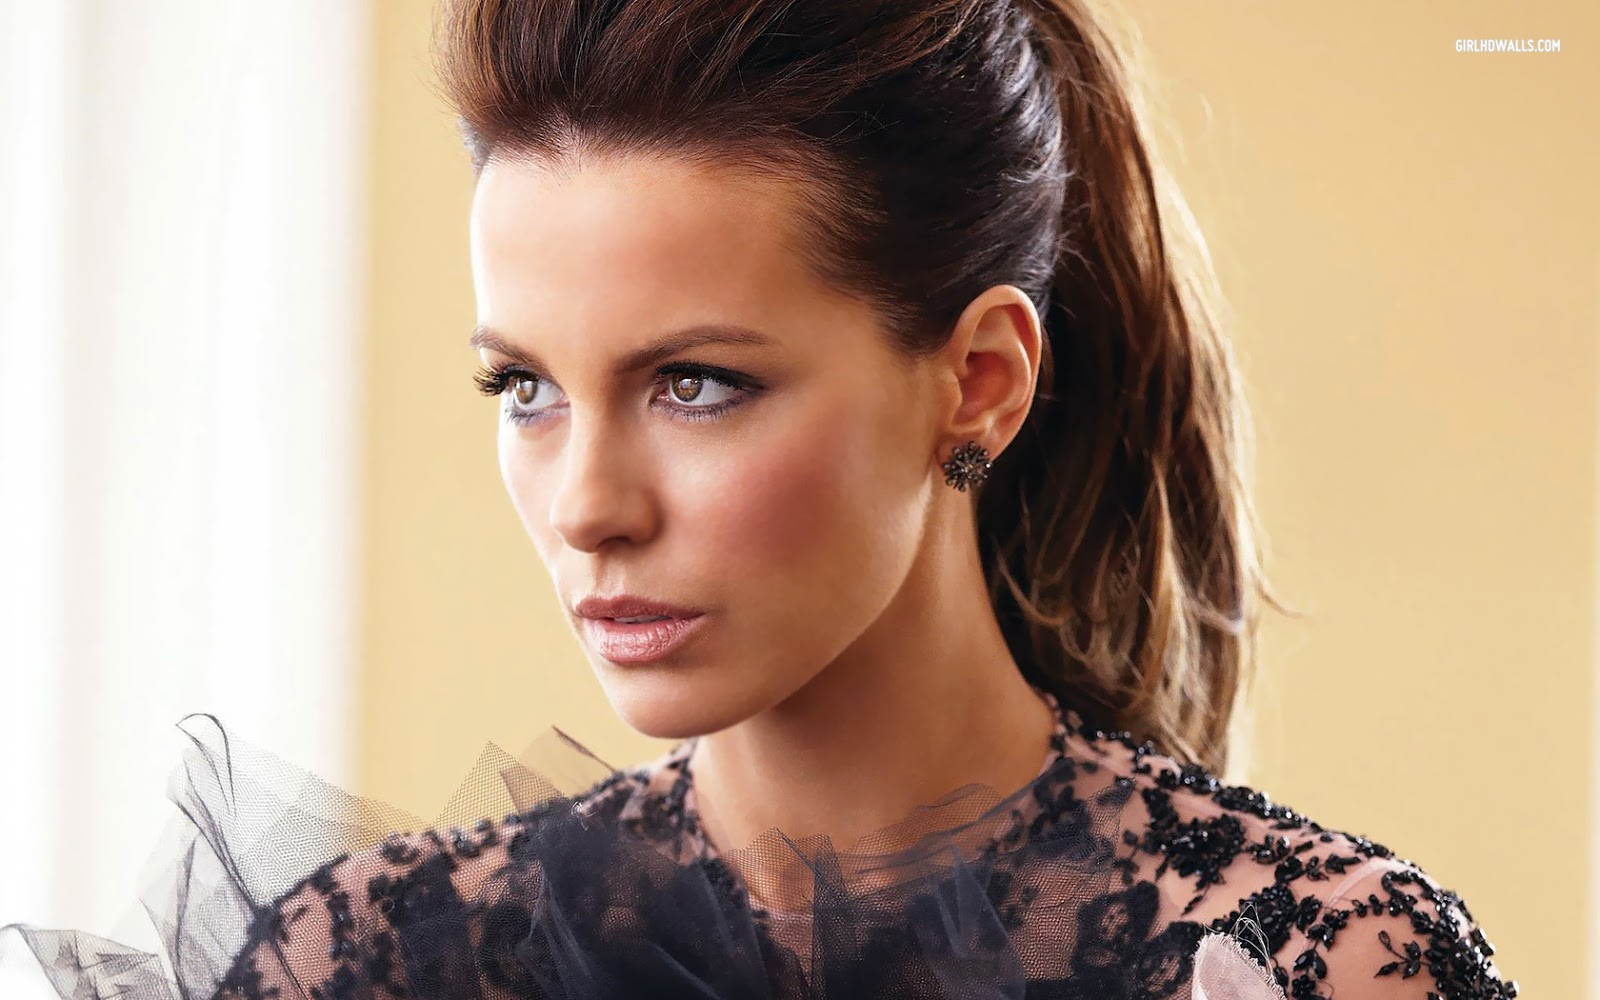 kate beckinsale beautiful hd pictures || hd wallpaper download for